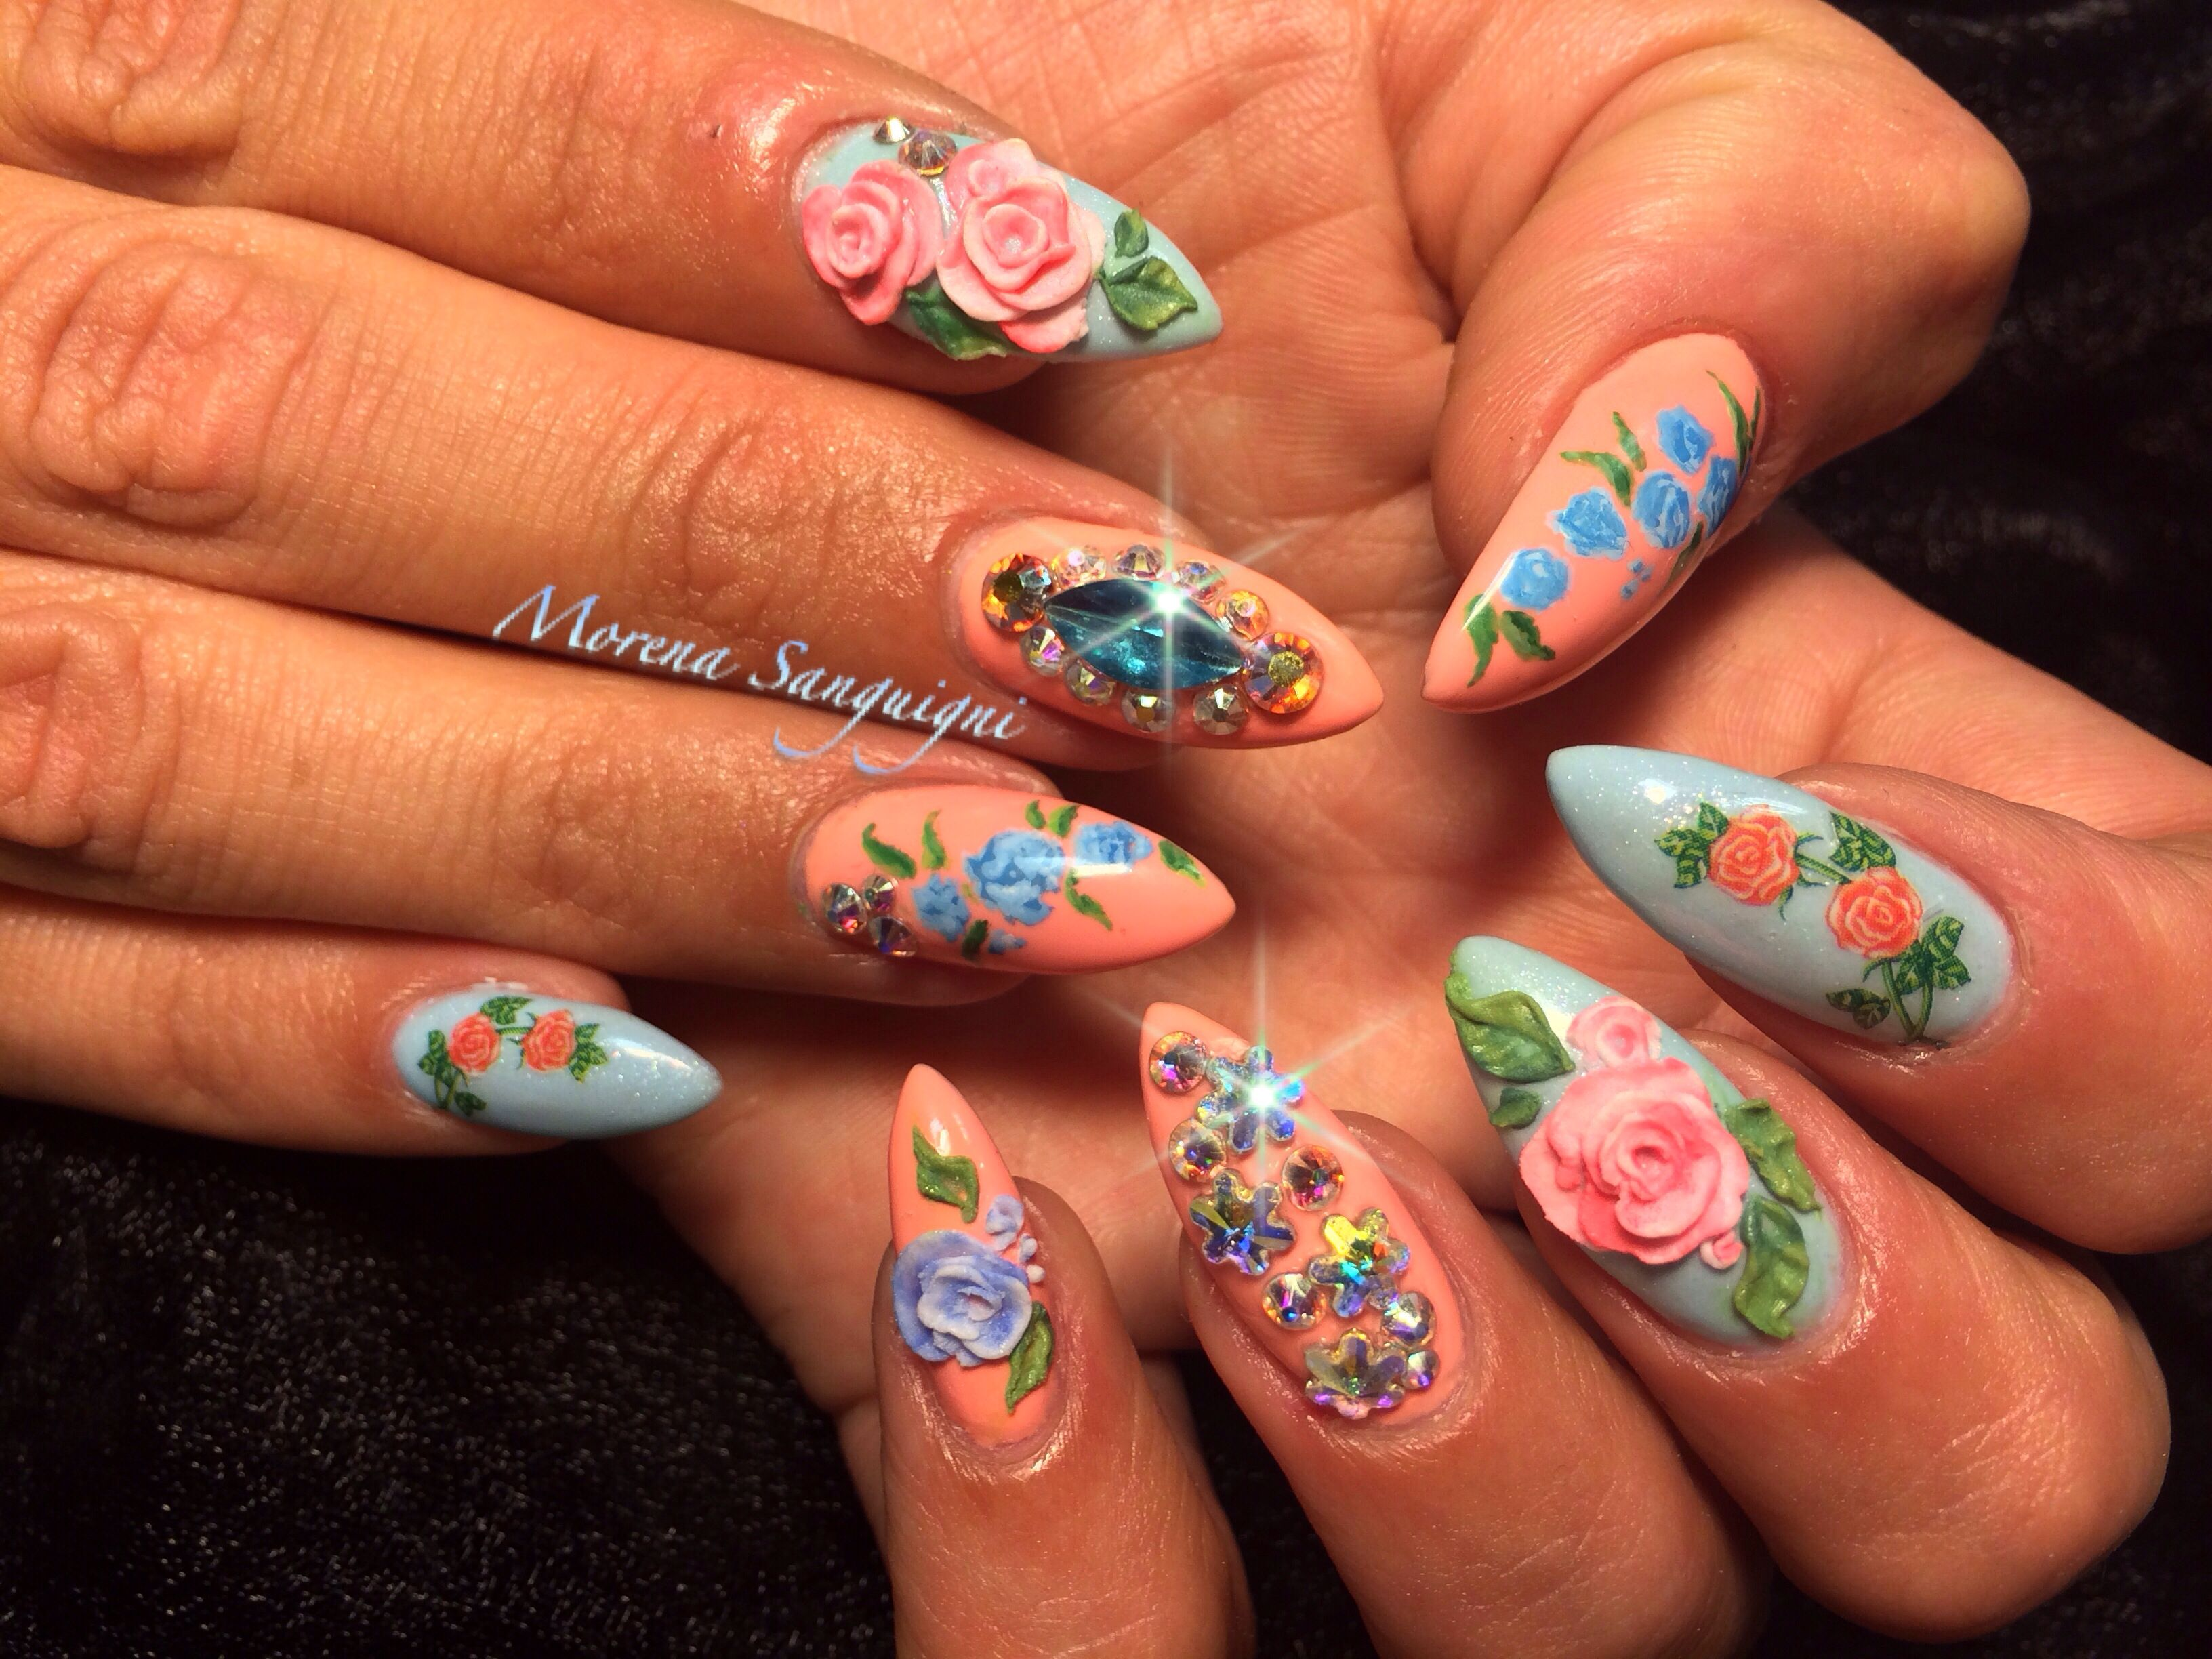 Acrylic nails with hand painted nail art roses peach baby blue acrylic nails with hand painted nail art roses peach baby blue pointed stiletto 3d acrylic roses prinsesfo Gallery